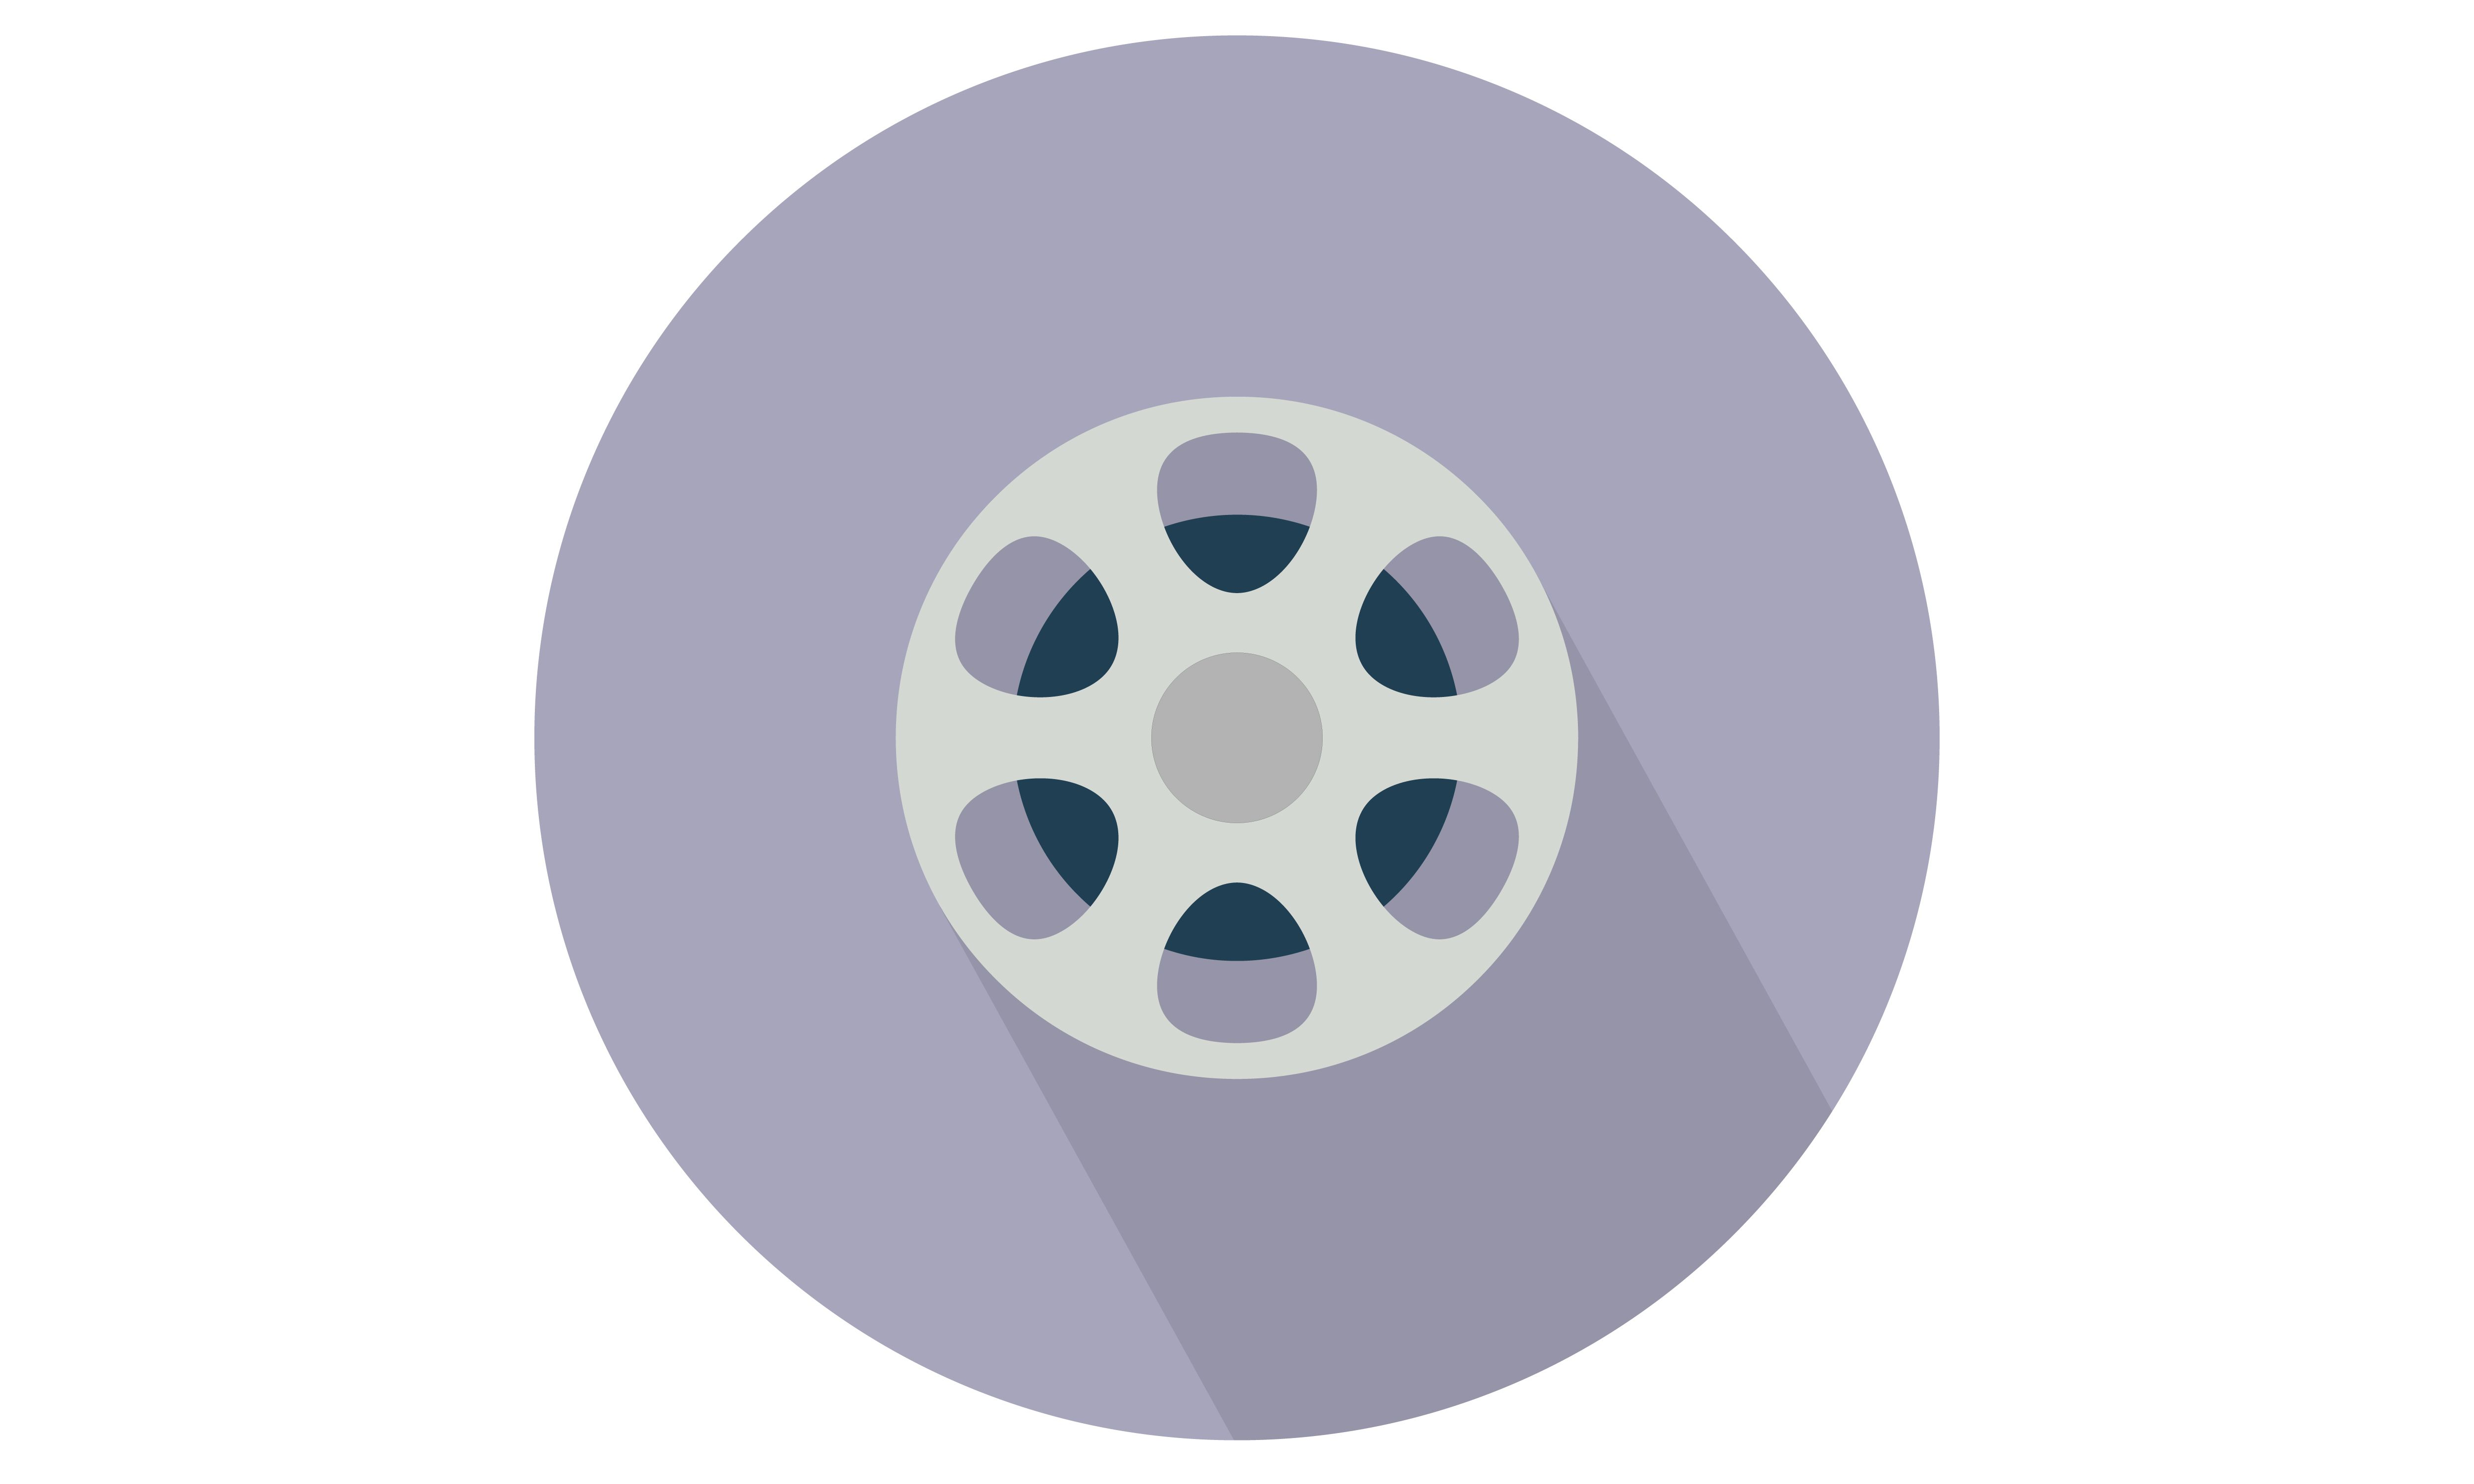 Film / Movie Reel Vector icon. From Our Range of vector